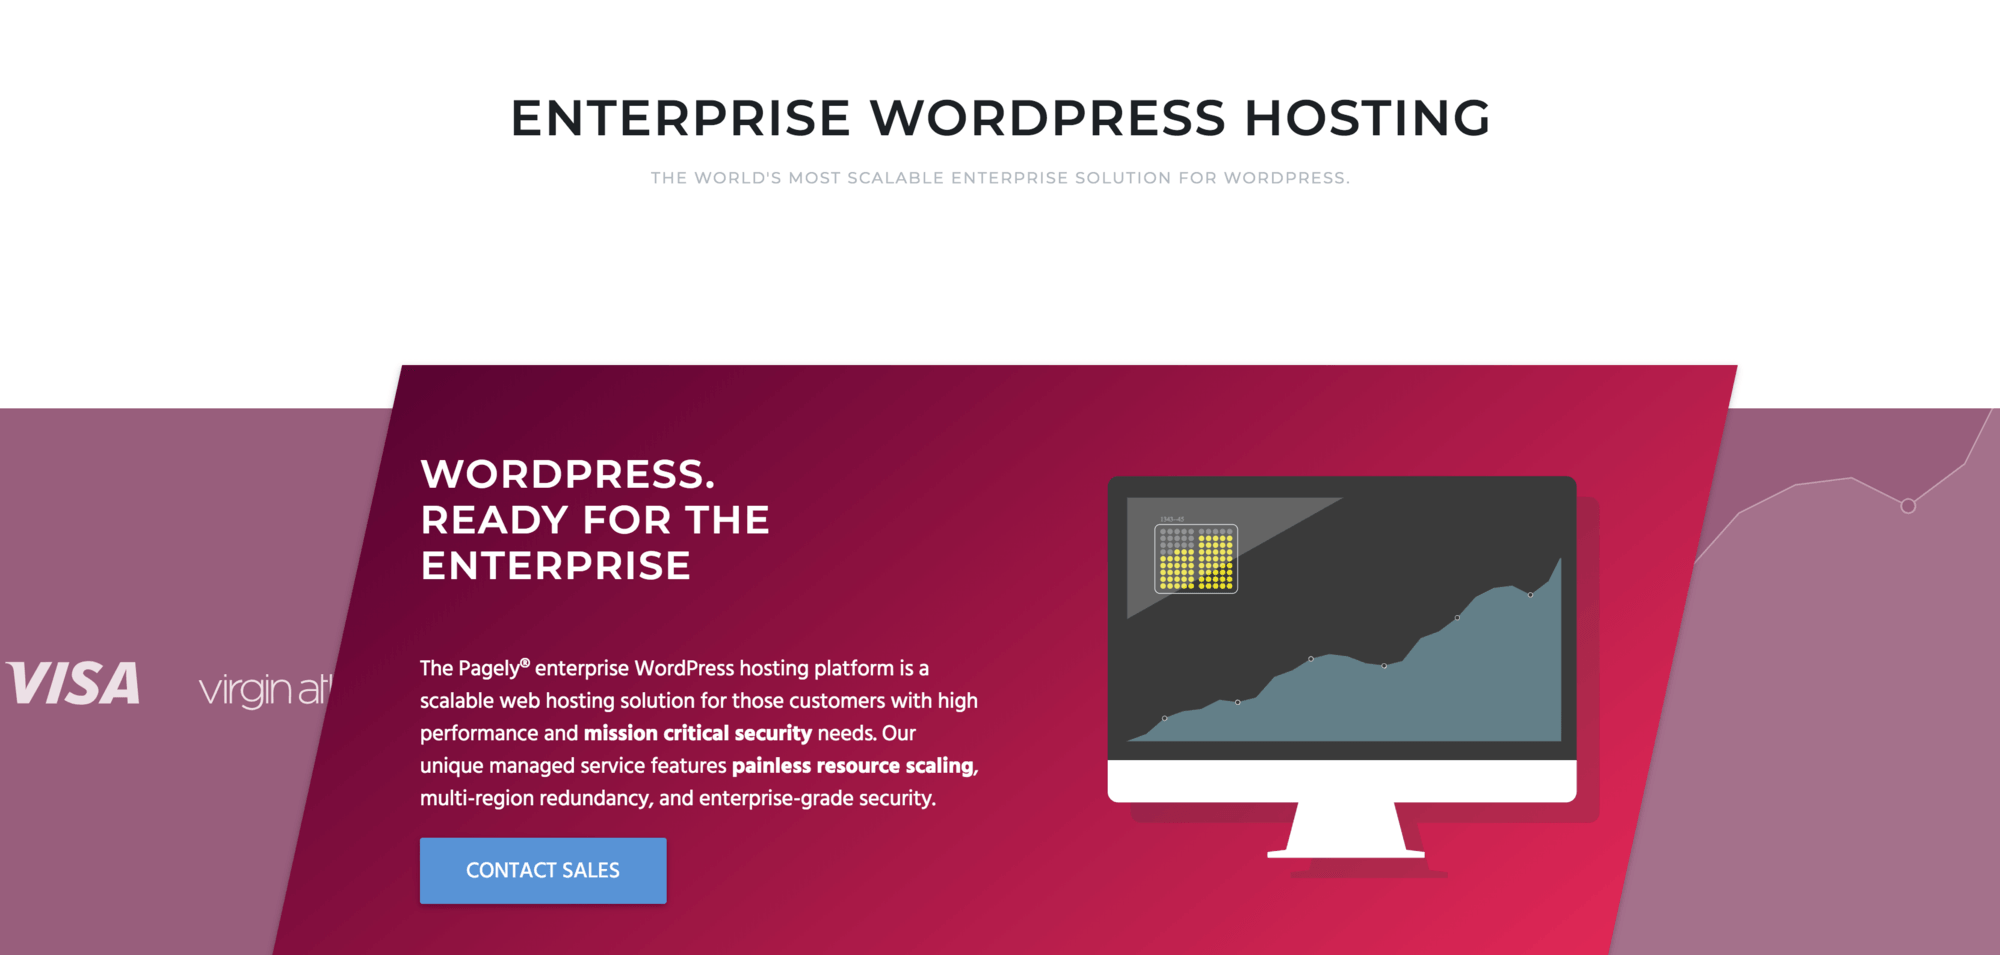 The landing page for Pagely's Enterprise WordPress hosting.